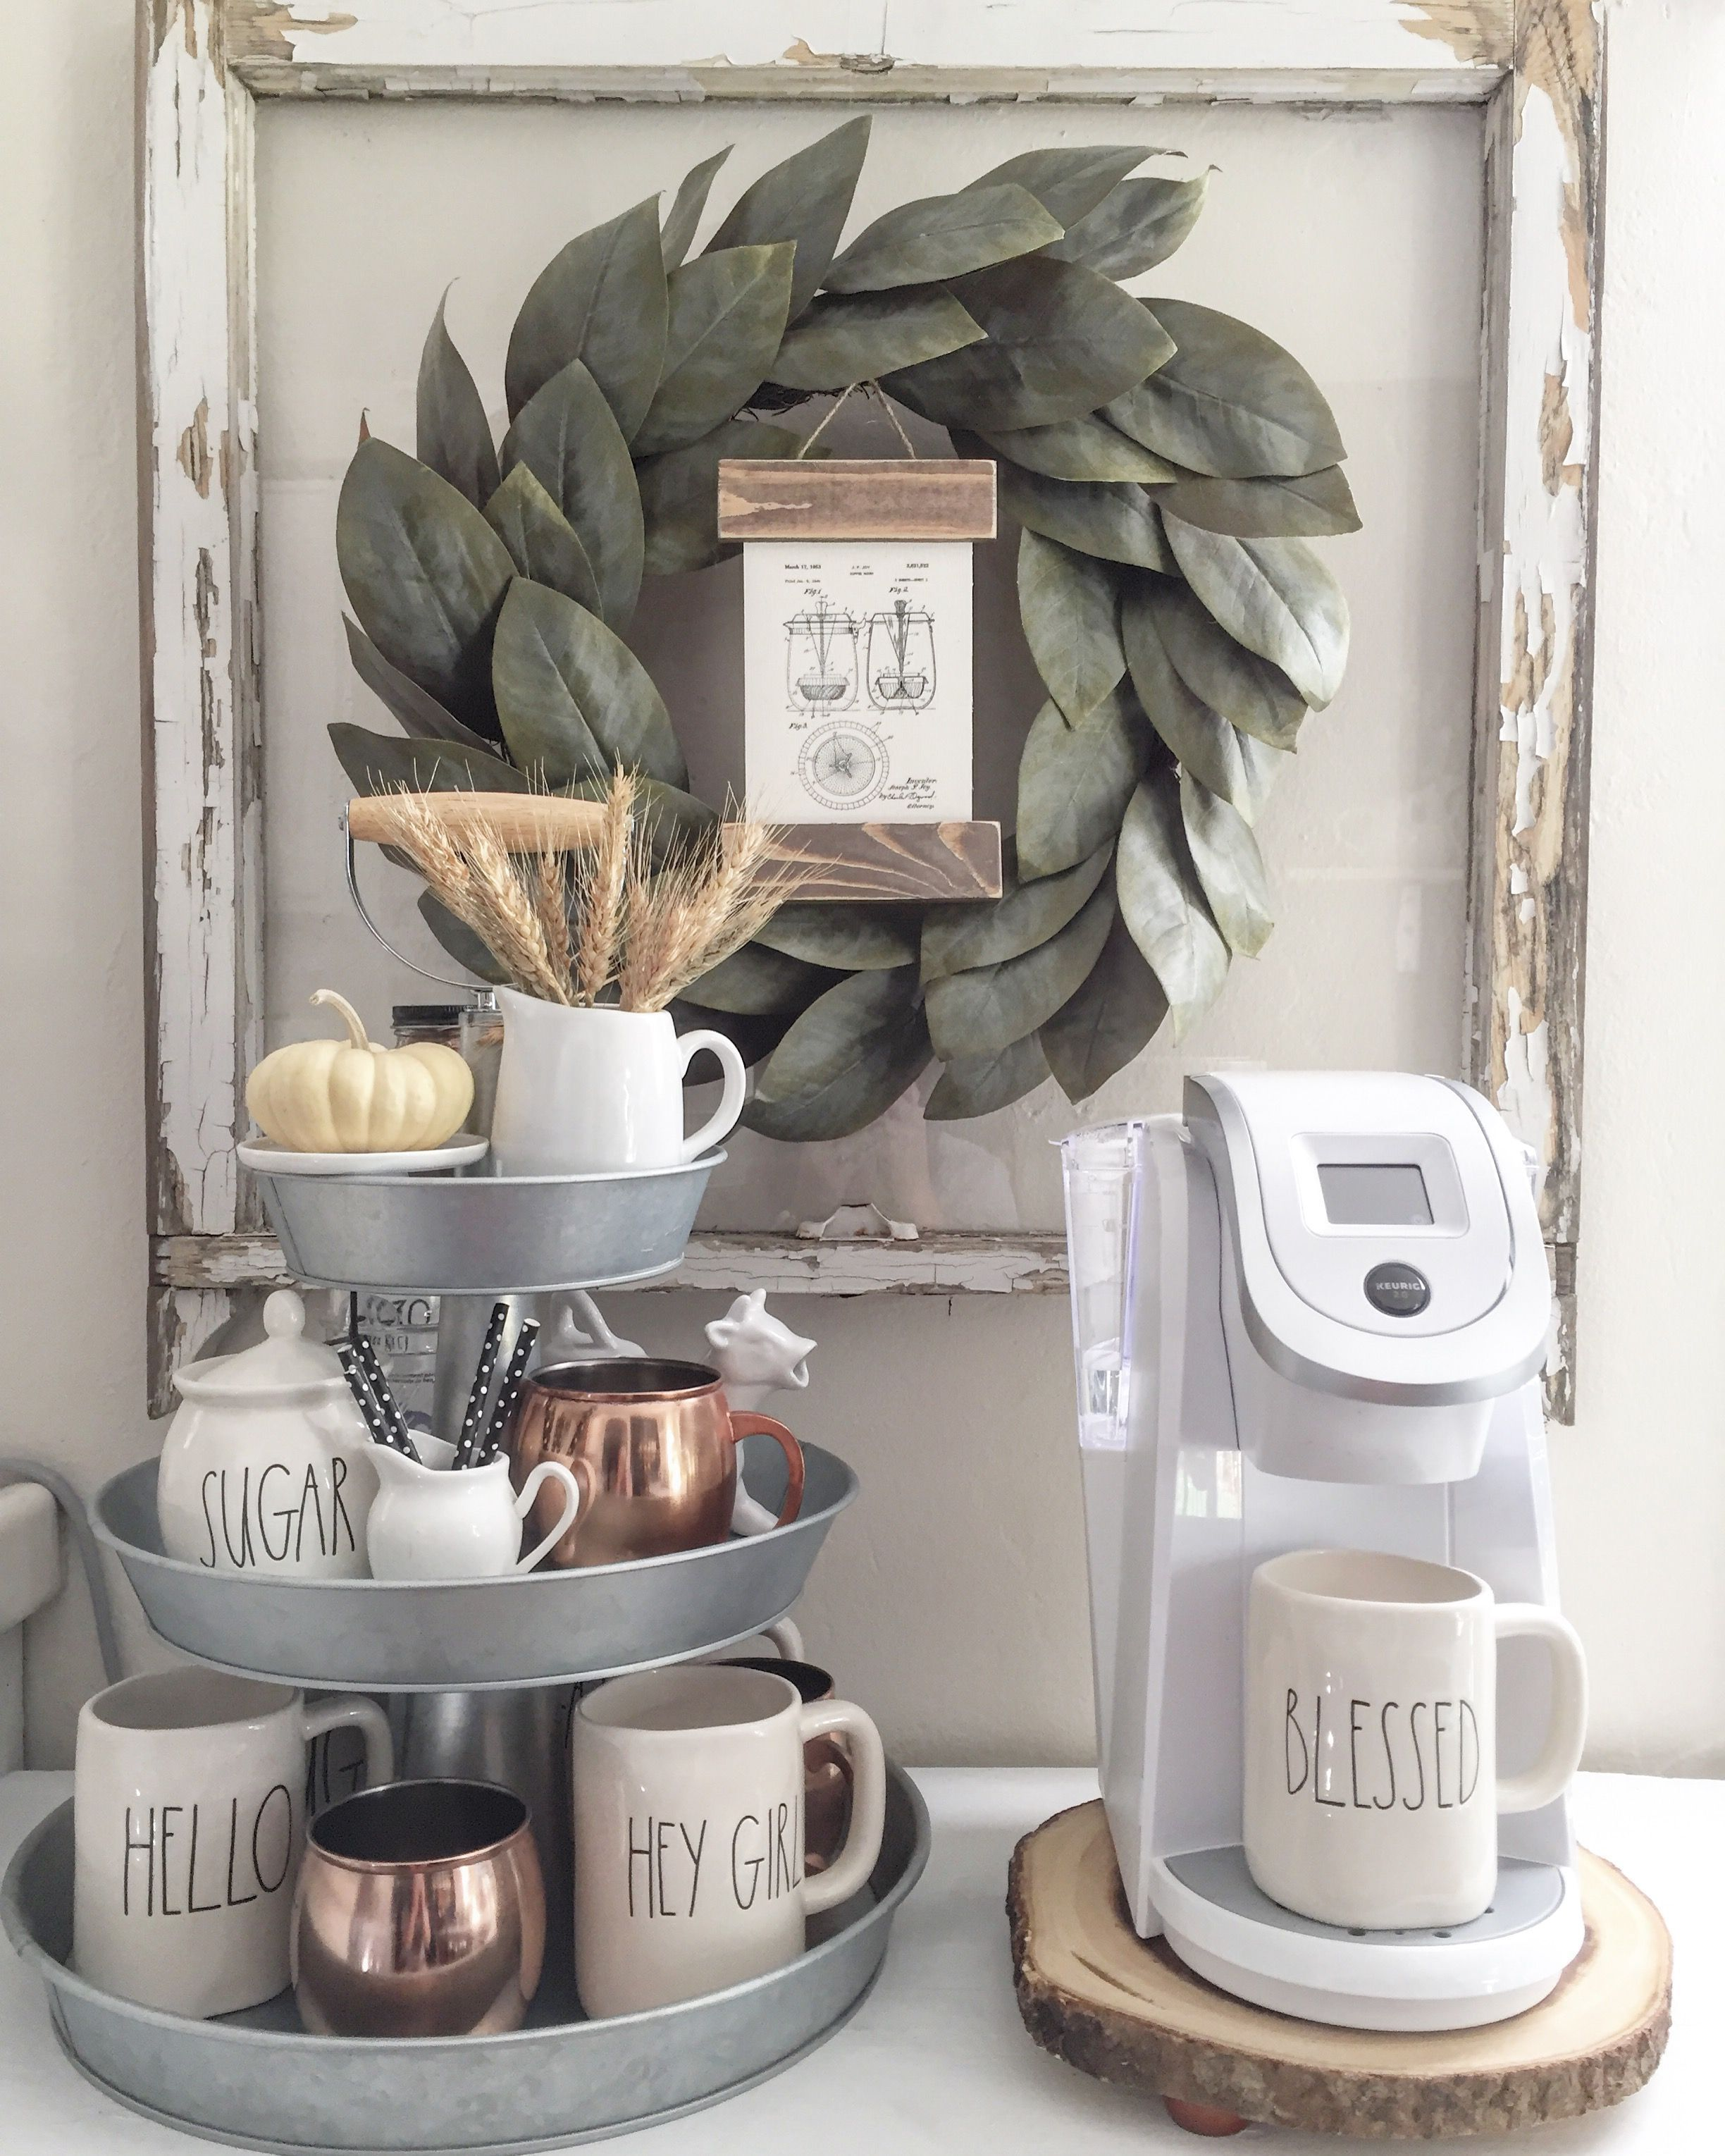 Home Coffee Bar Design Ideas: Personalized Home Coffee Bar Ideas